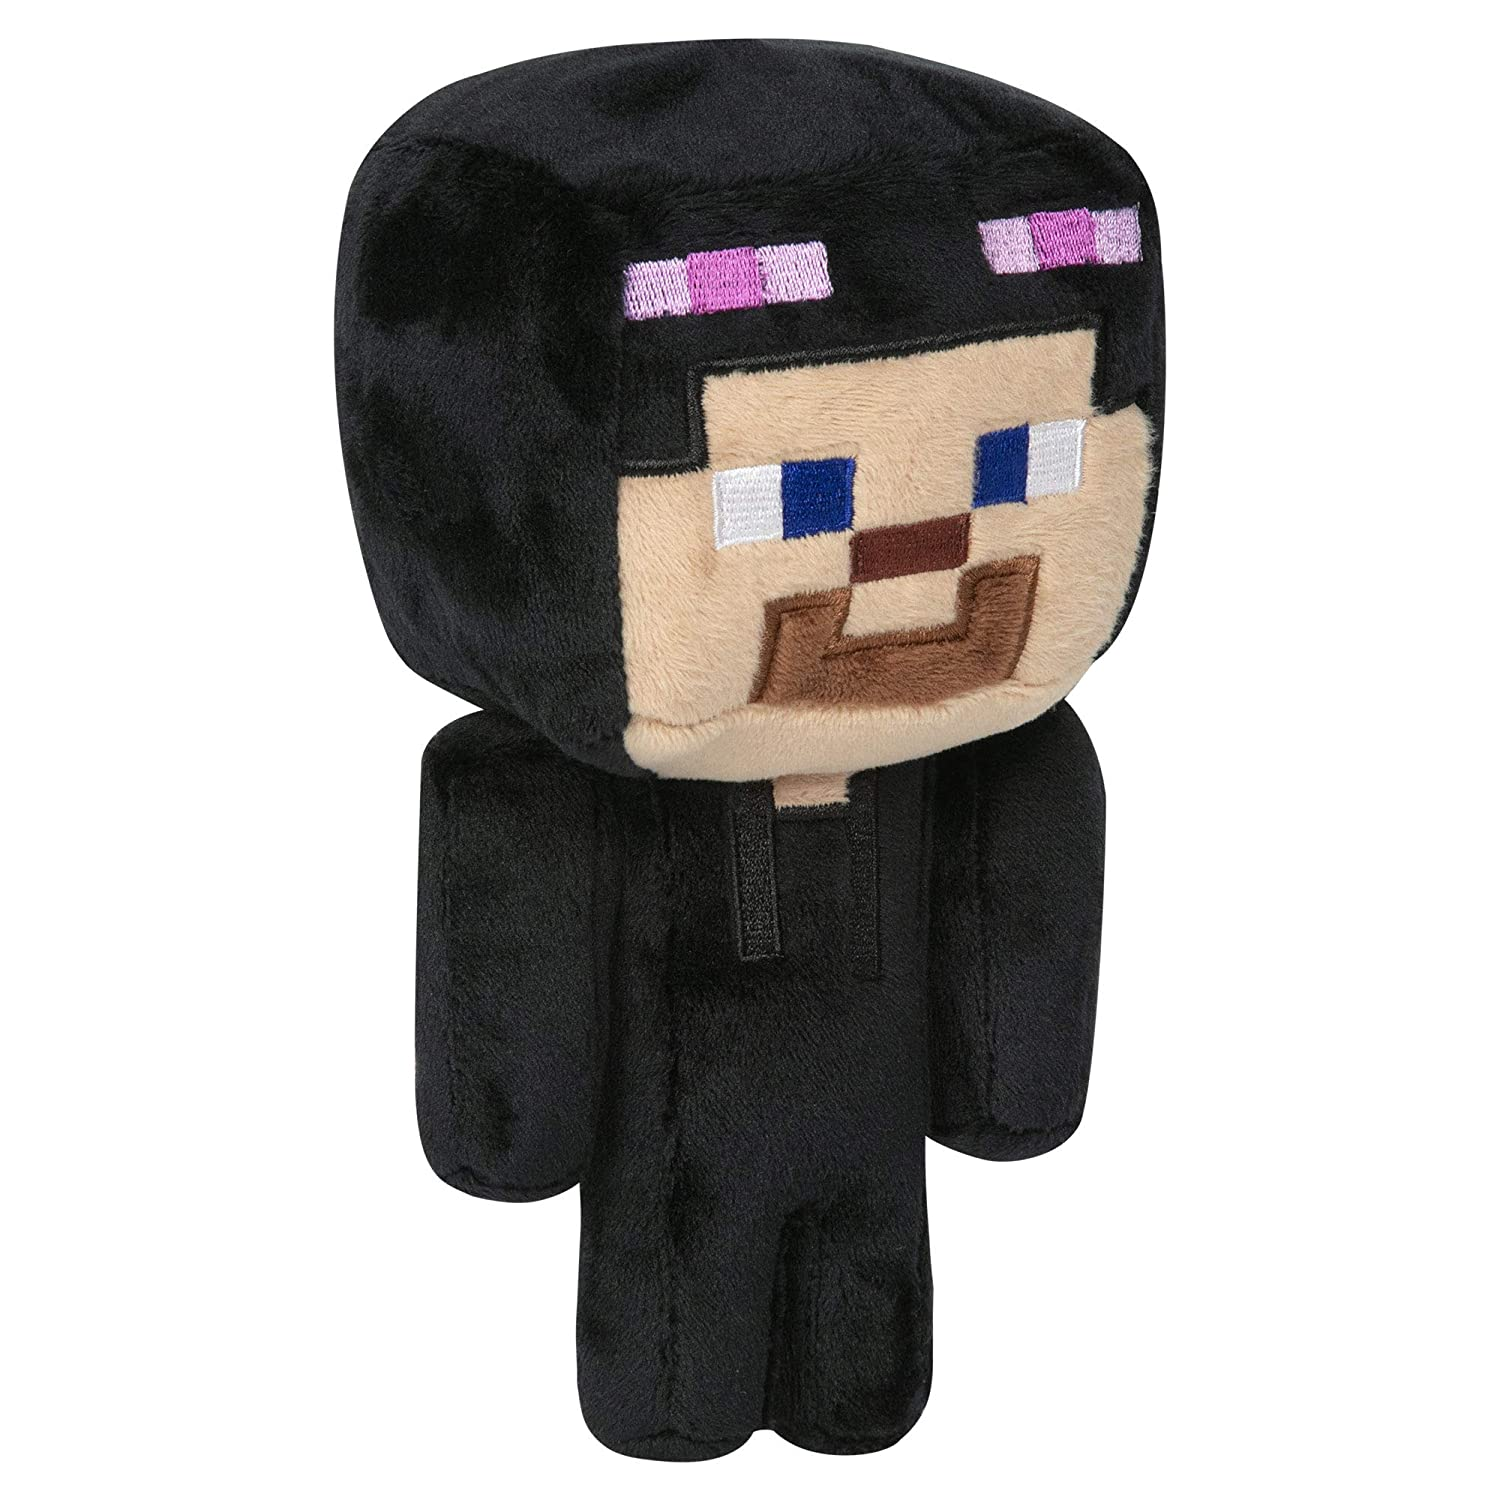 Minecraft Enderman 7IN Plush Collect all Minecraft Plush Toys new free shipping